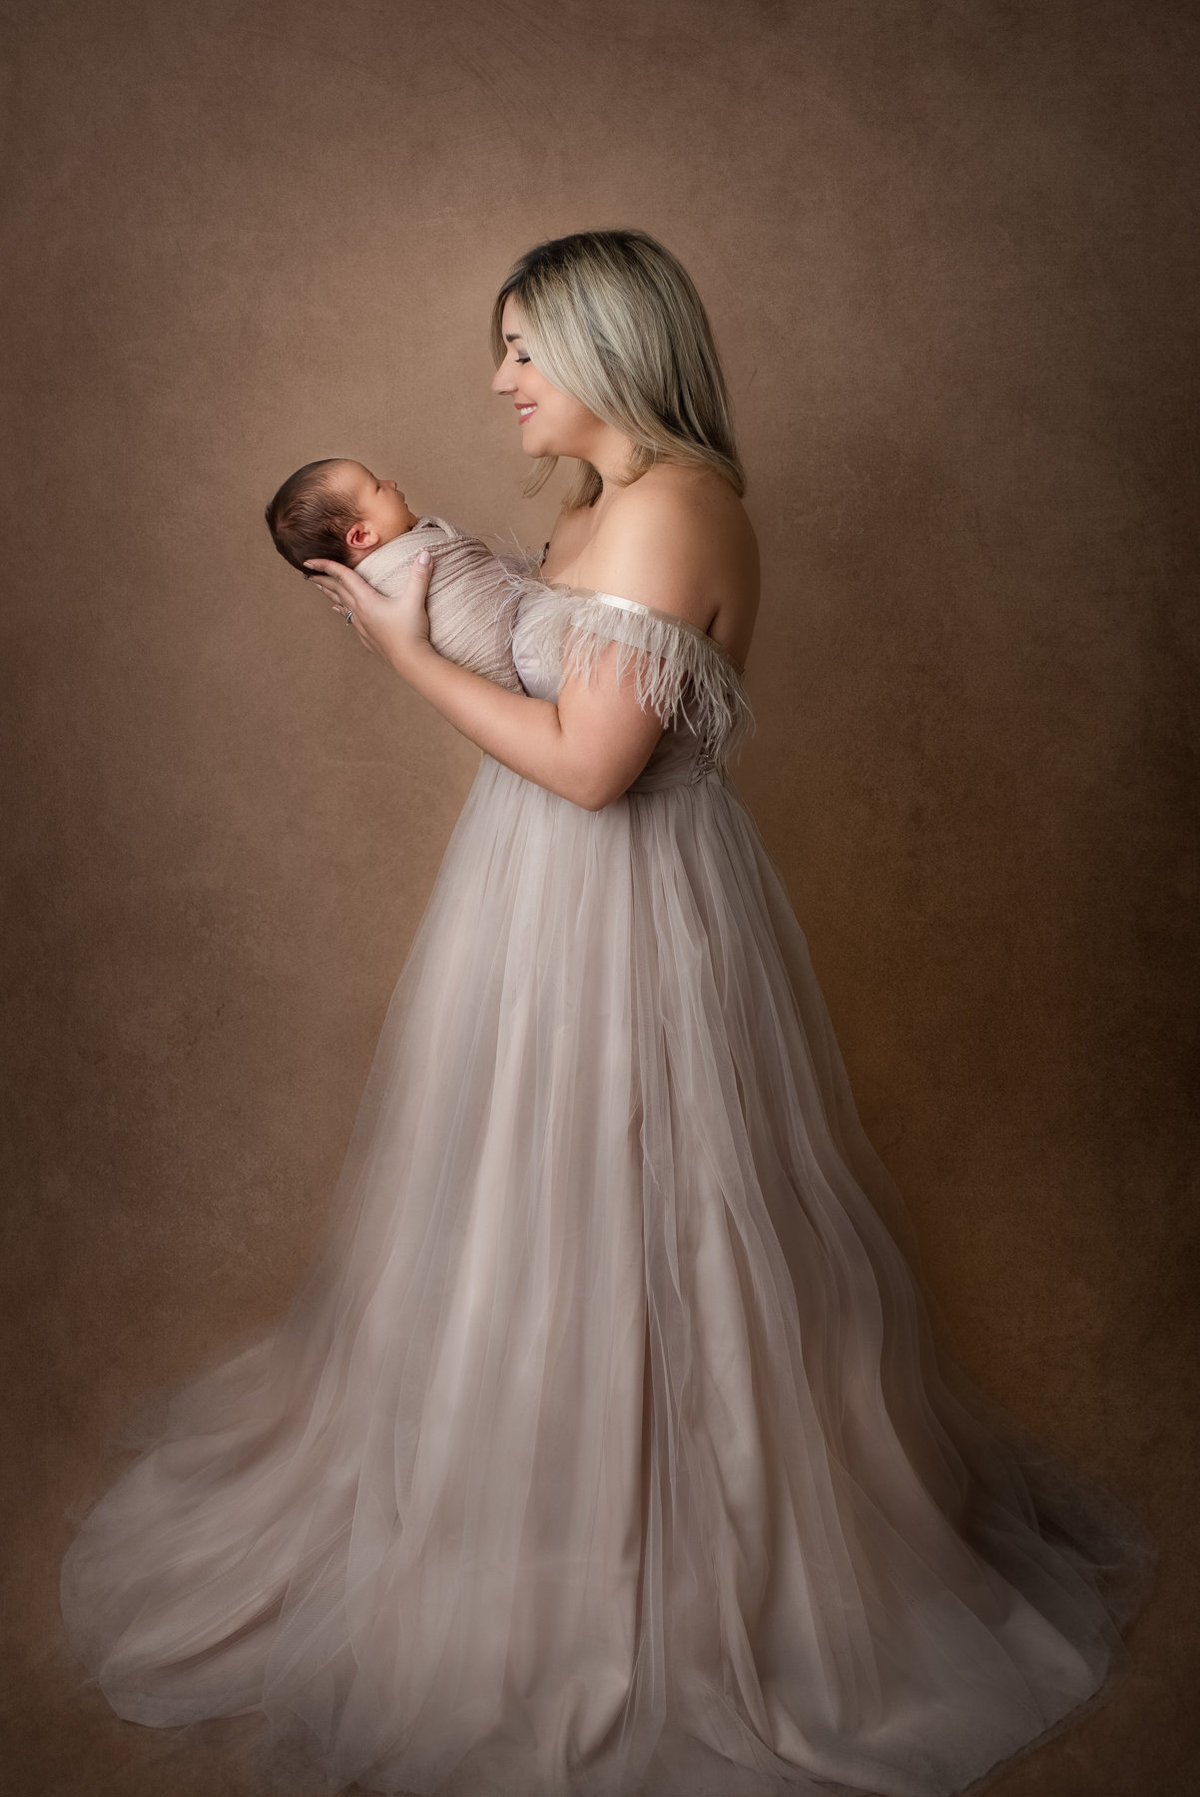 columbus-maternity-photographer-dublin-hilliard-newalbany-pregnancy-photos